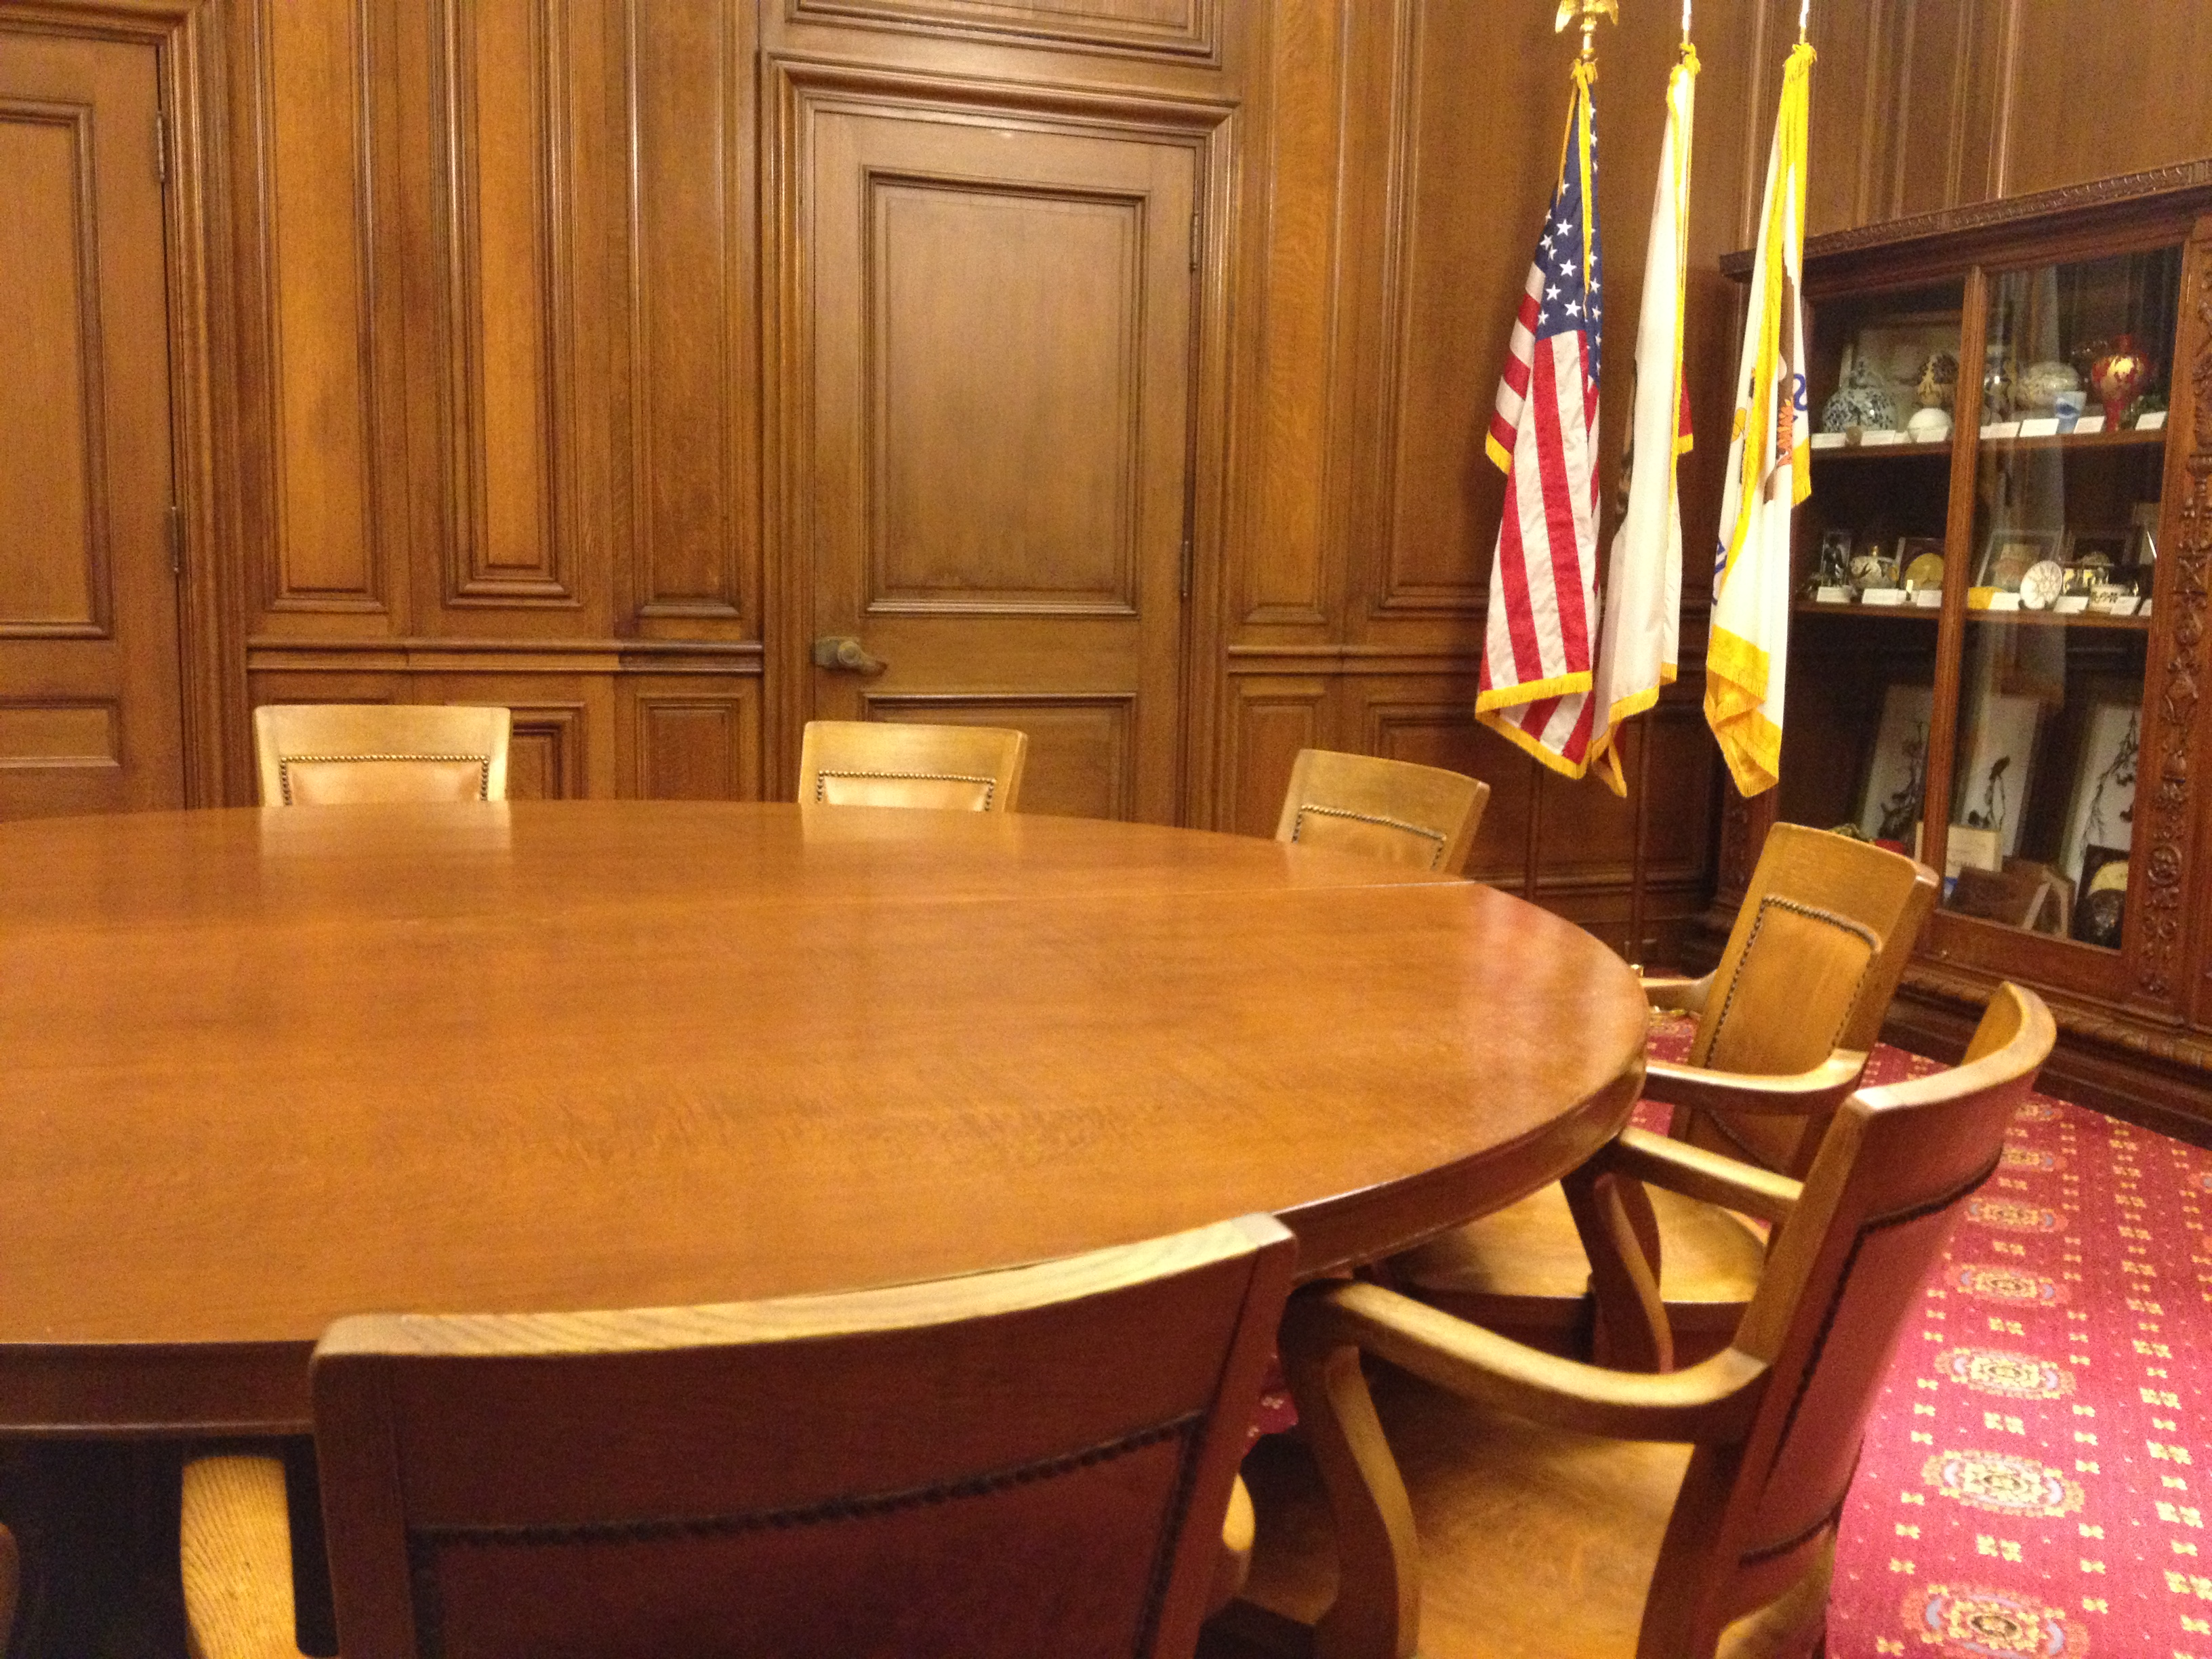 Waiting for the mayor of San Francisco in his meeting room